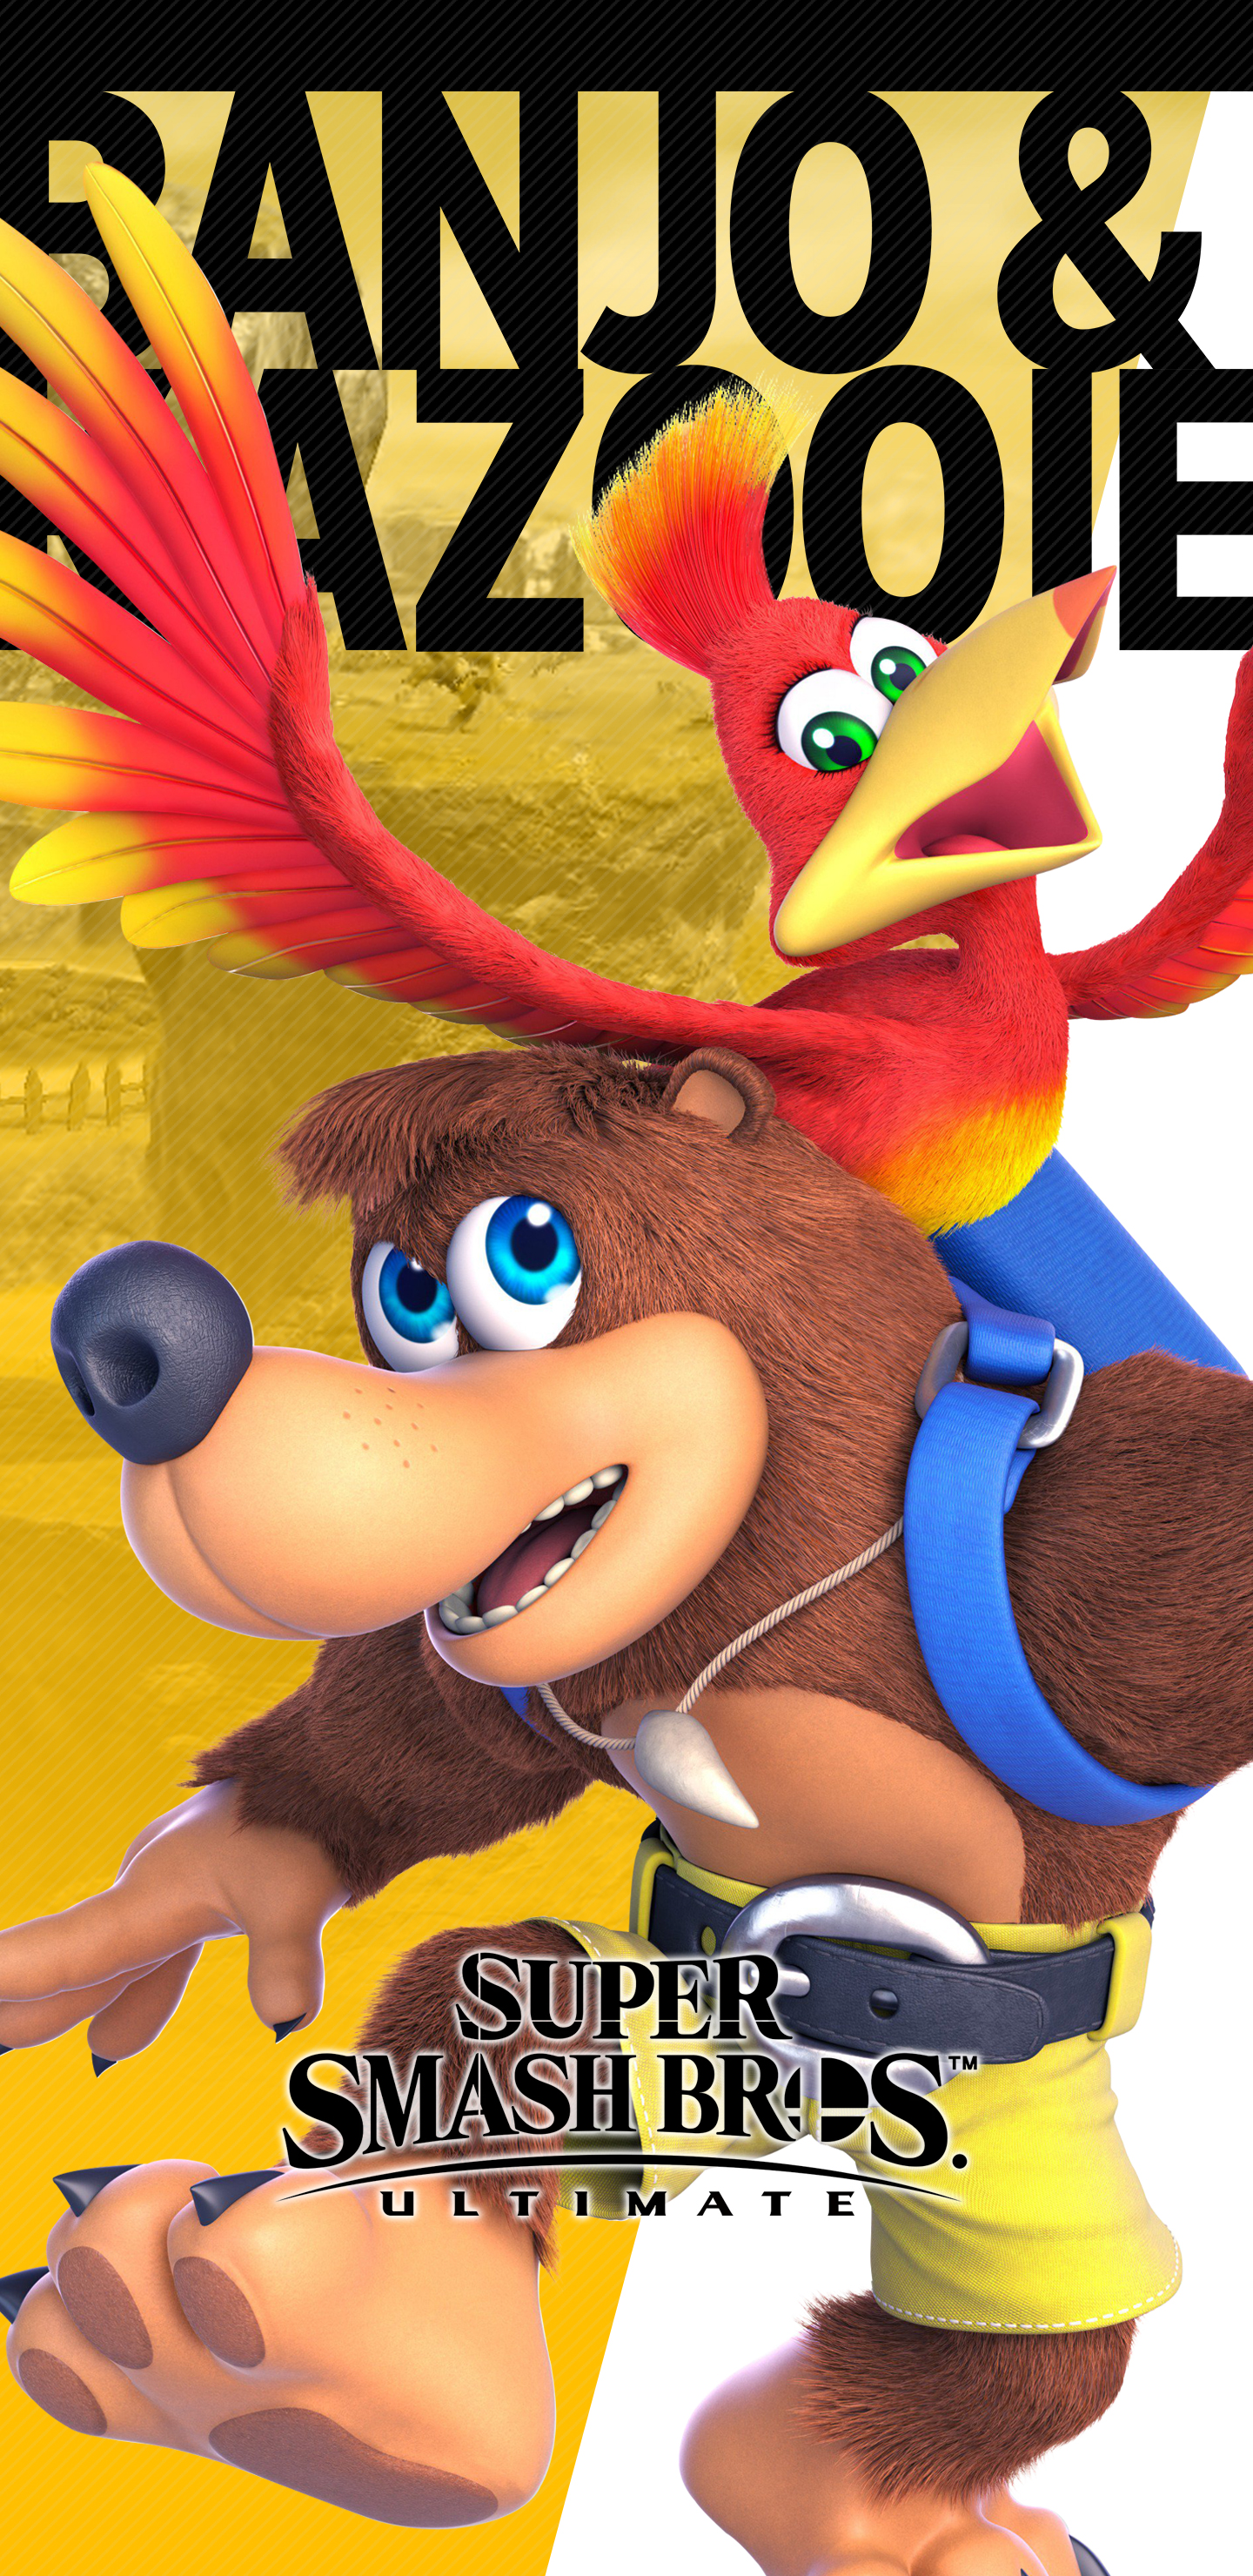 Super Smash Bros Ultimate Banjo Kazooie Wallpapers Unofficial